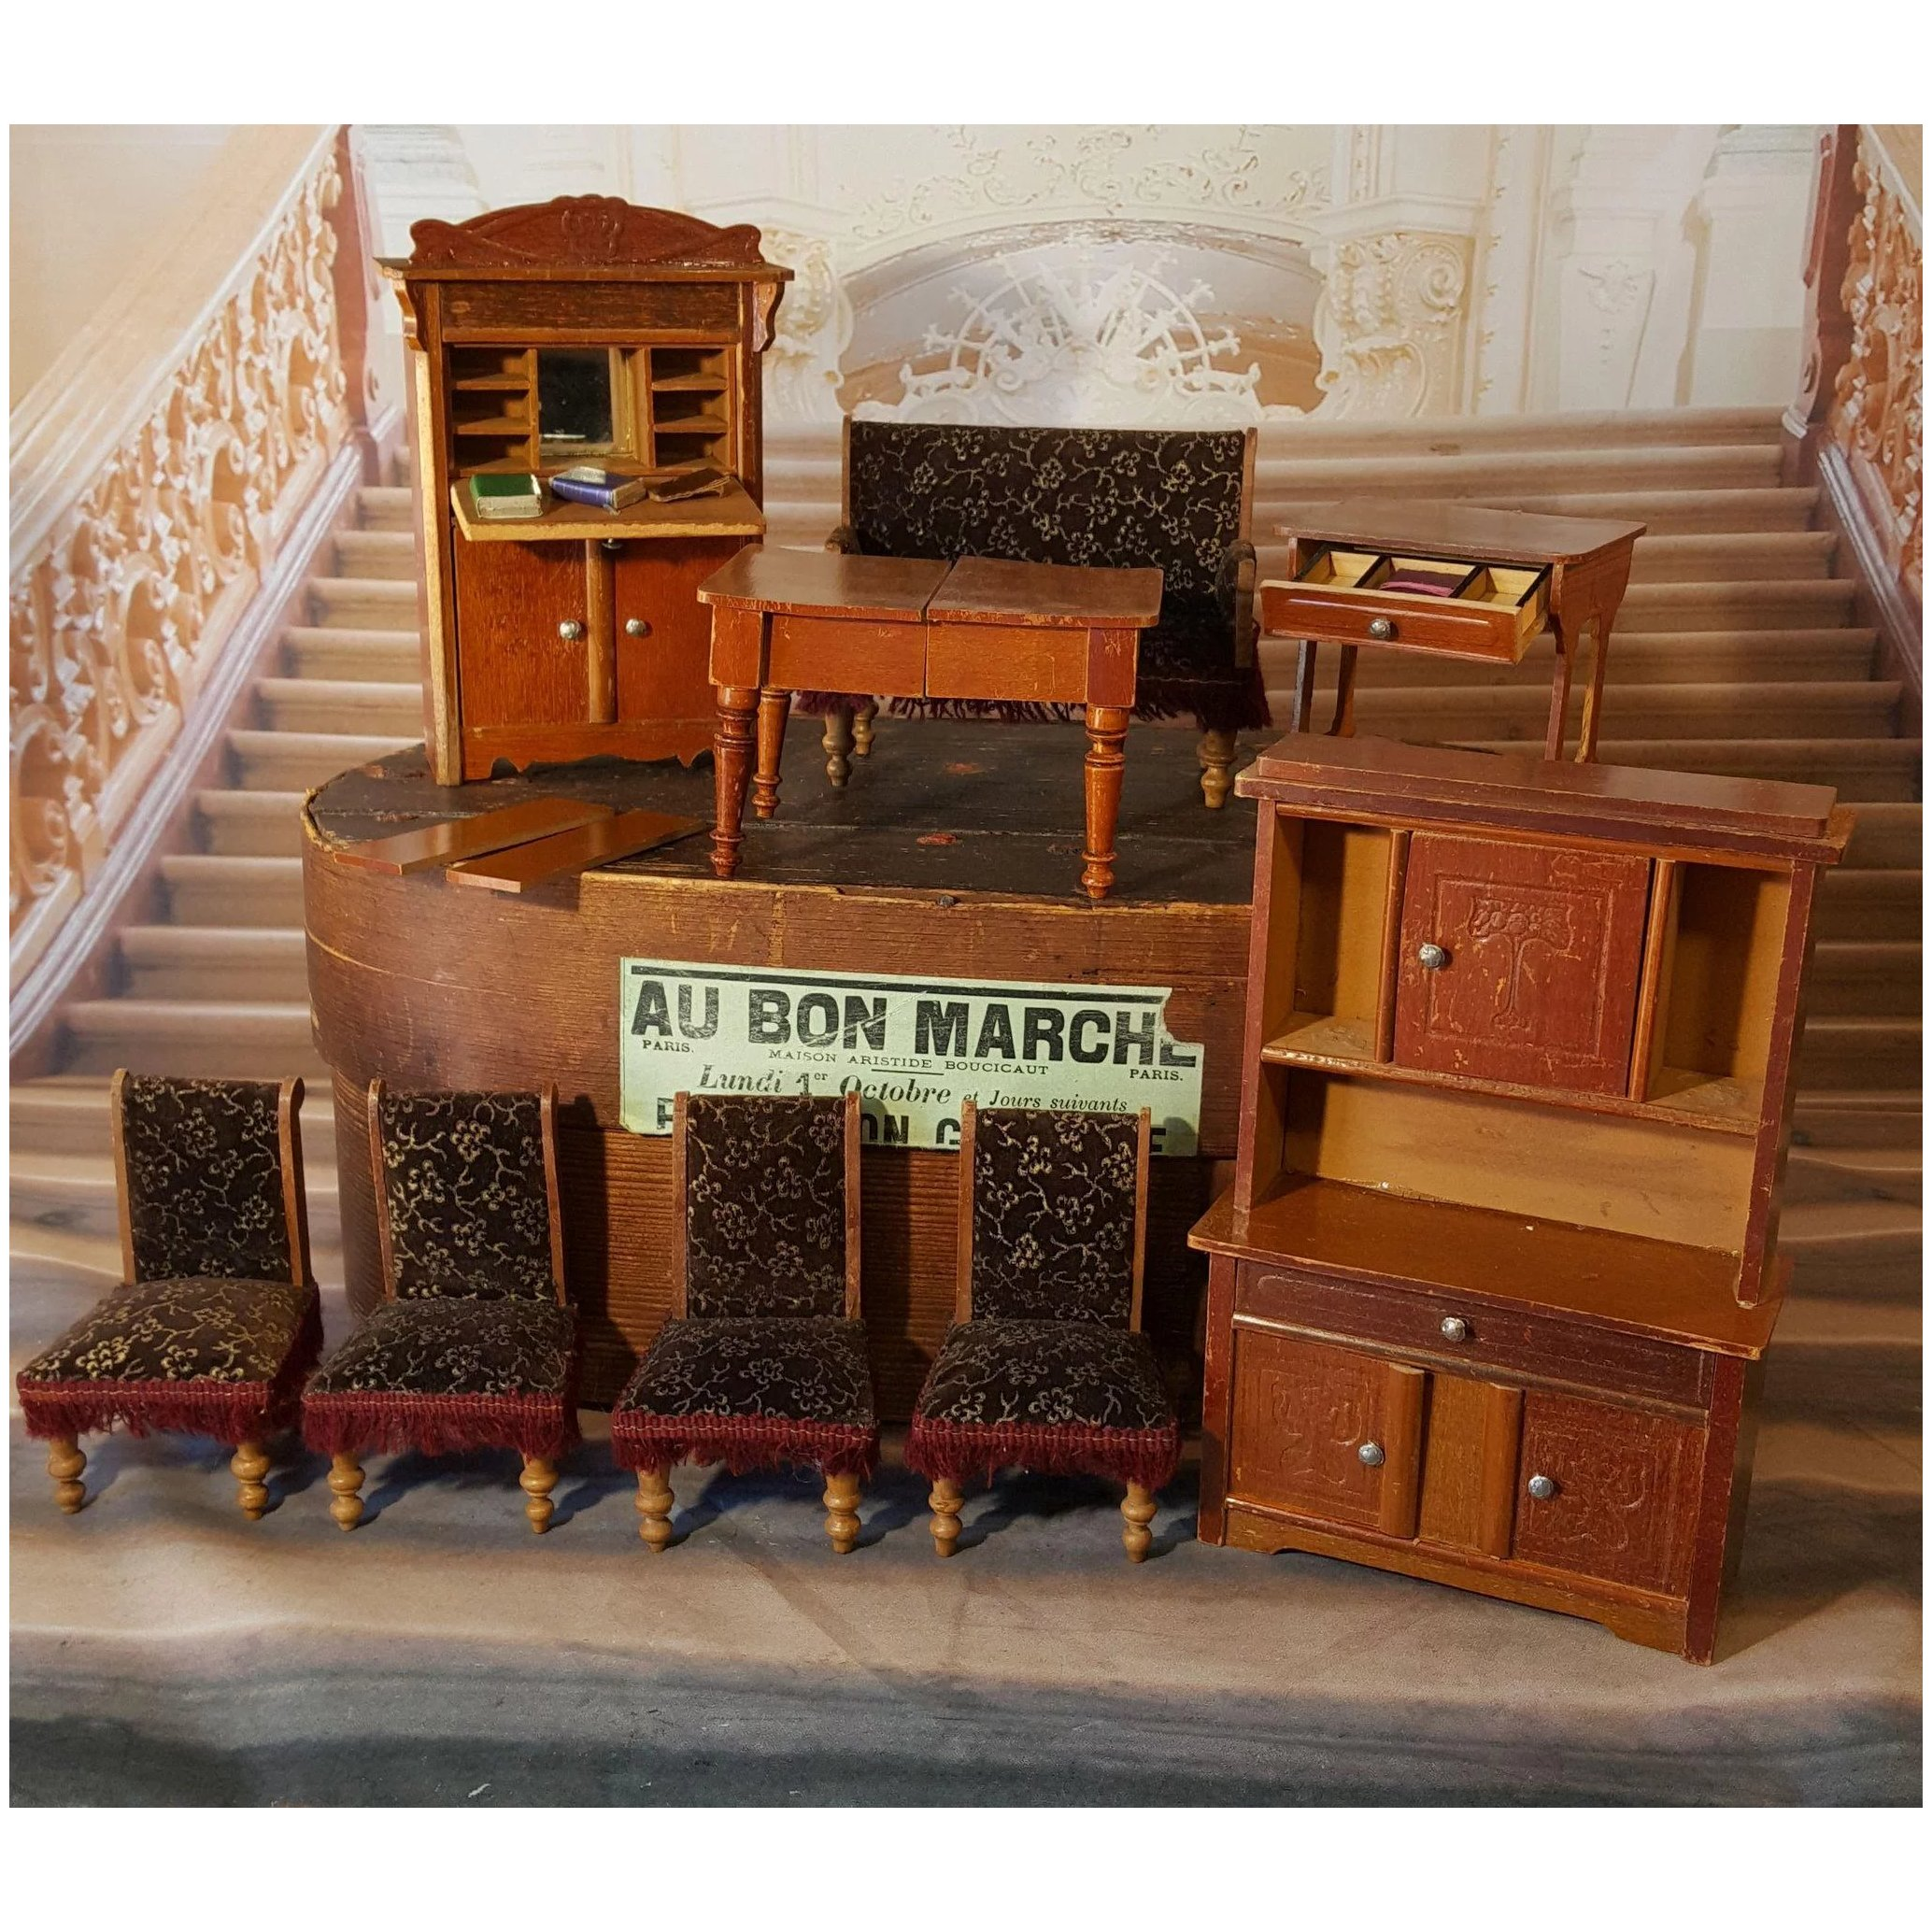 Antique Dolls House Furniture Cheap Toys Kids Toys